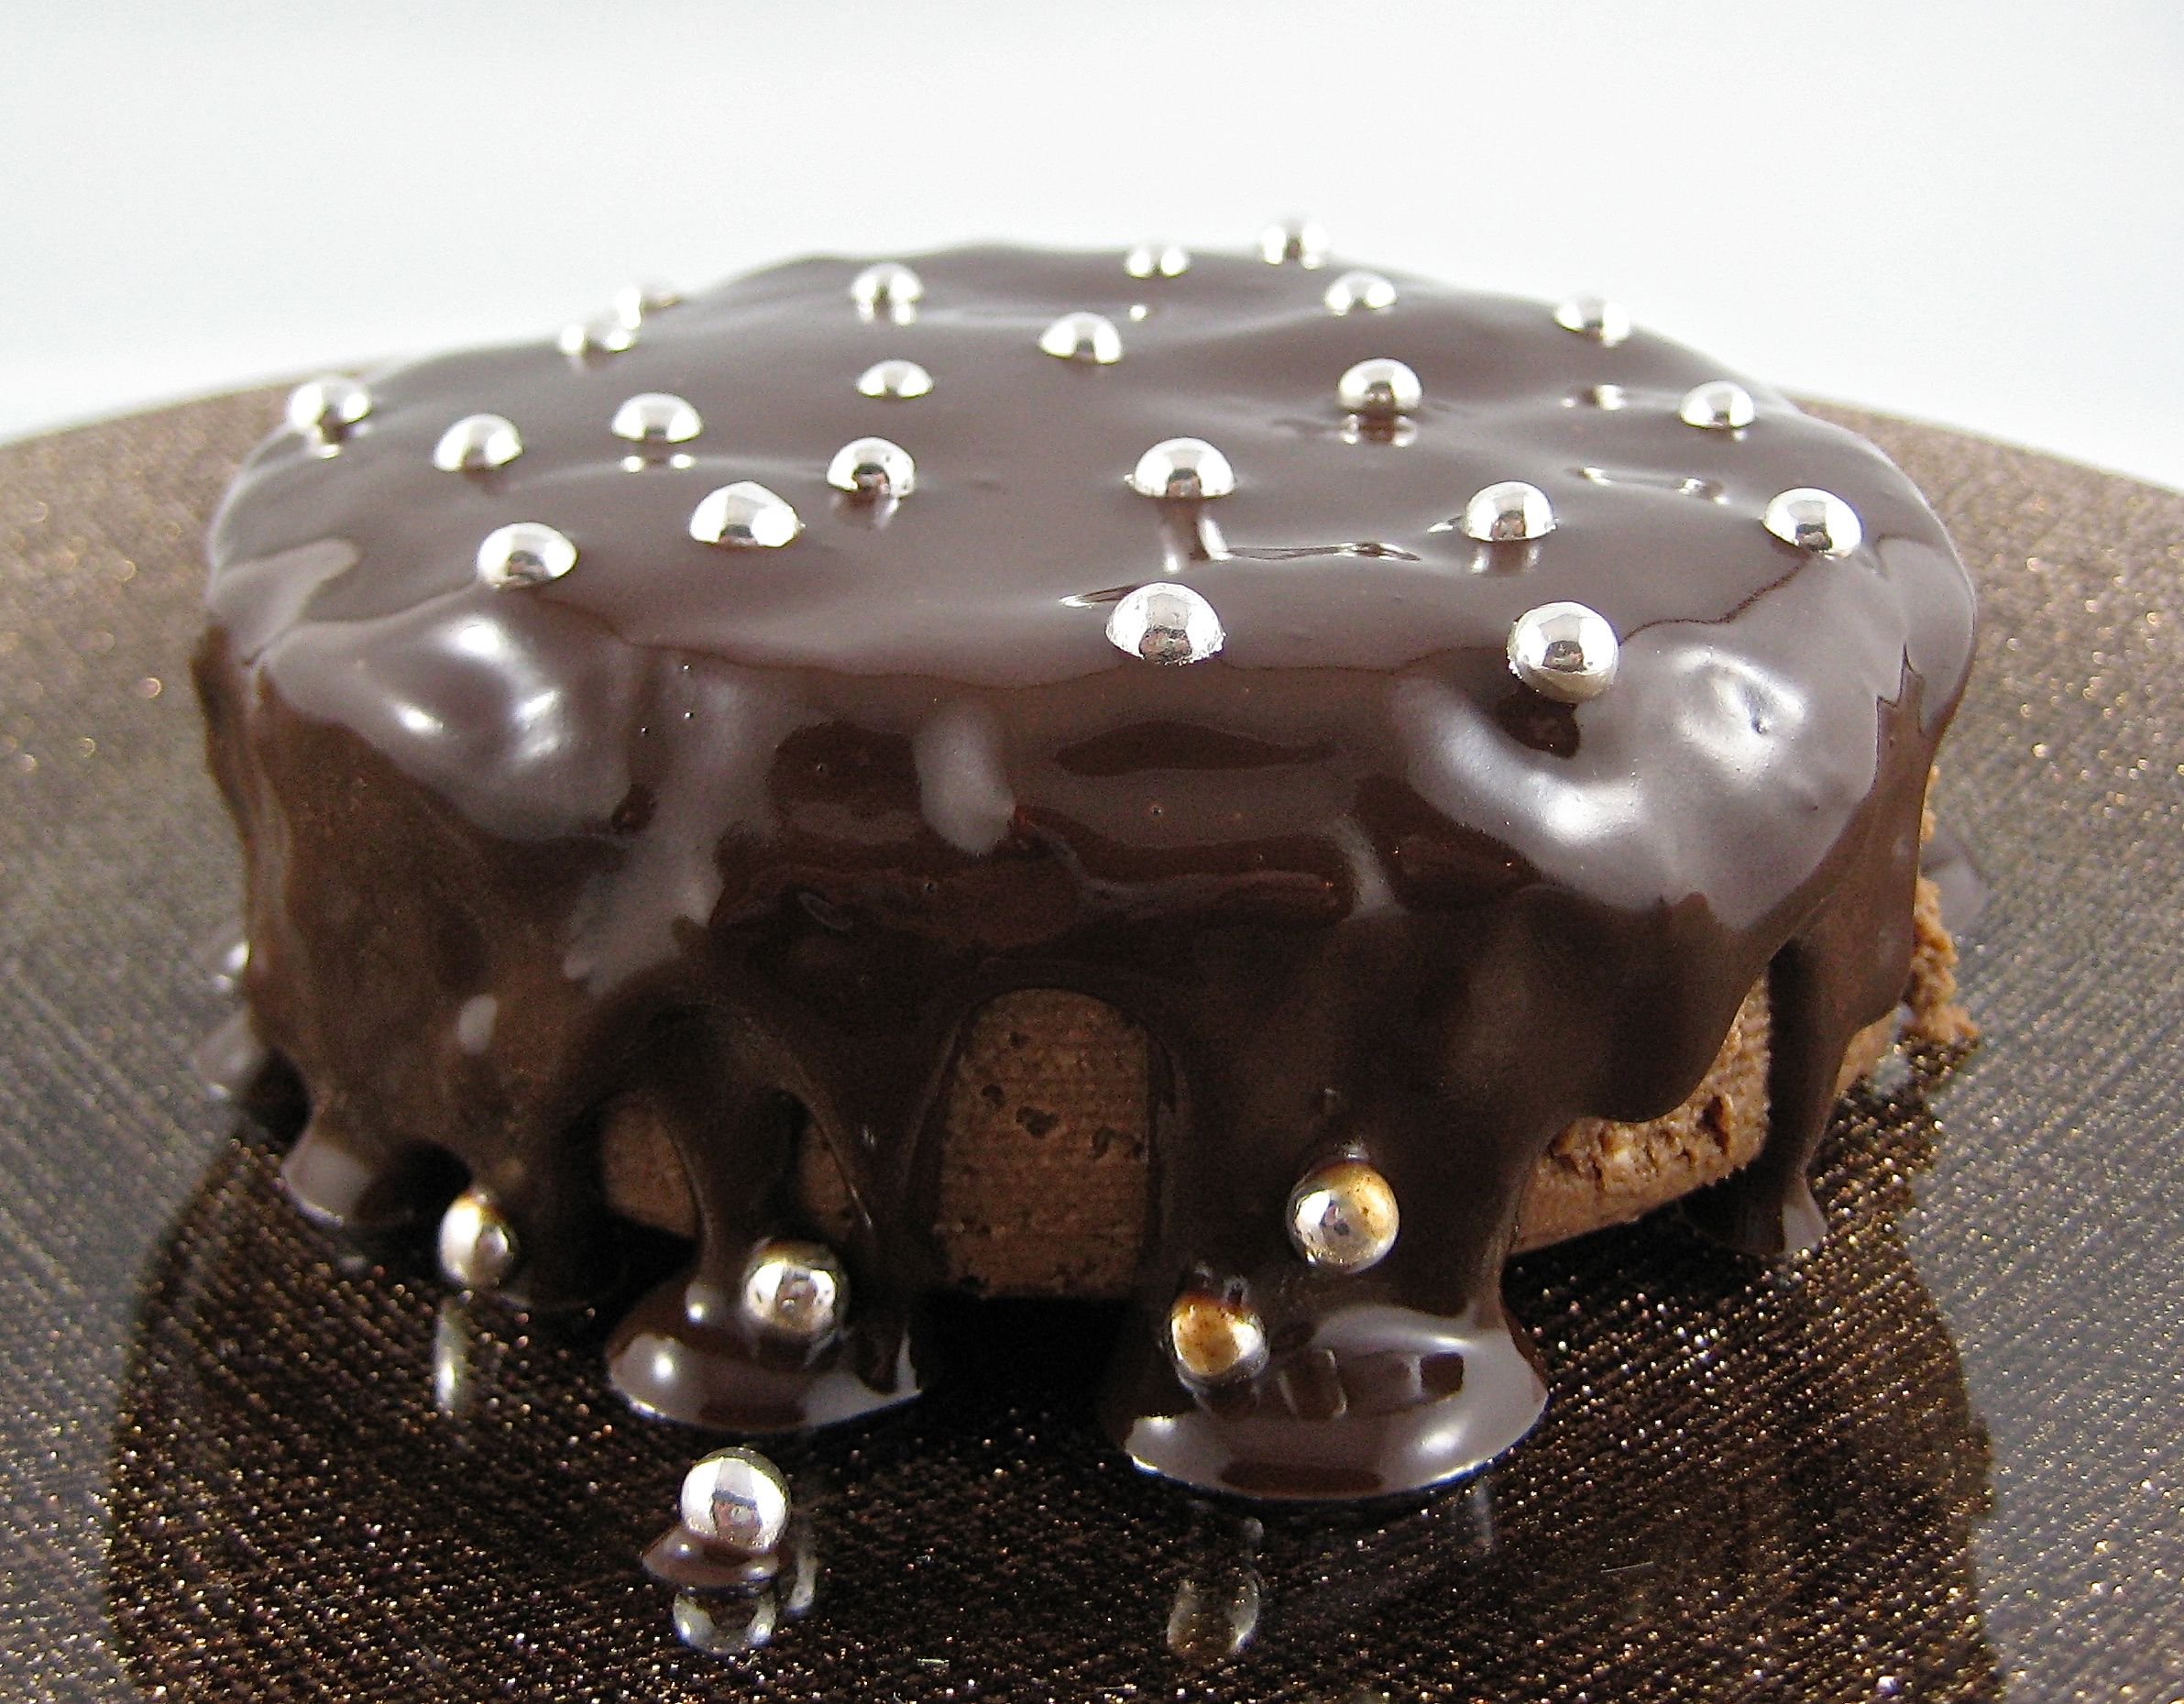 Chocolate Espresso Cheesecake from October 2012